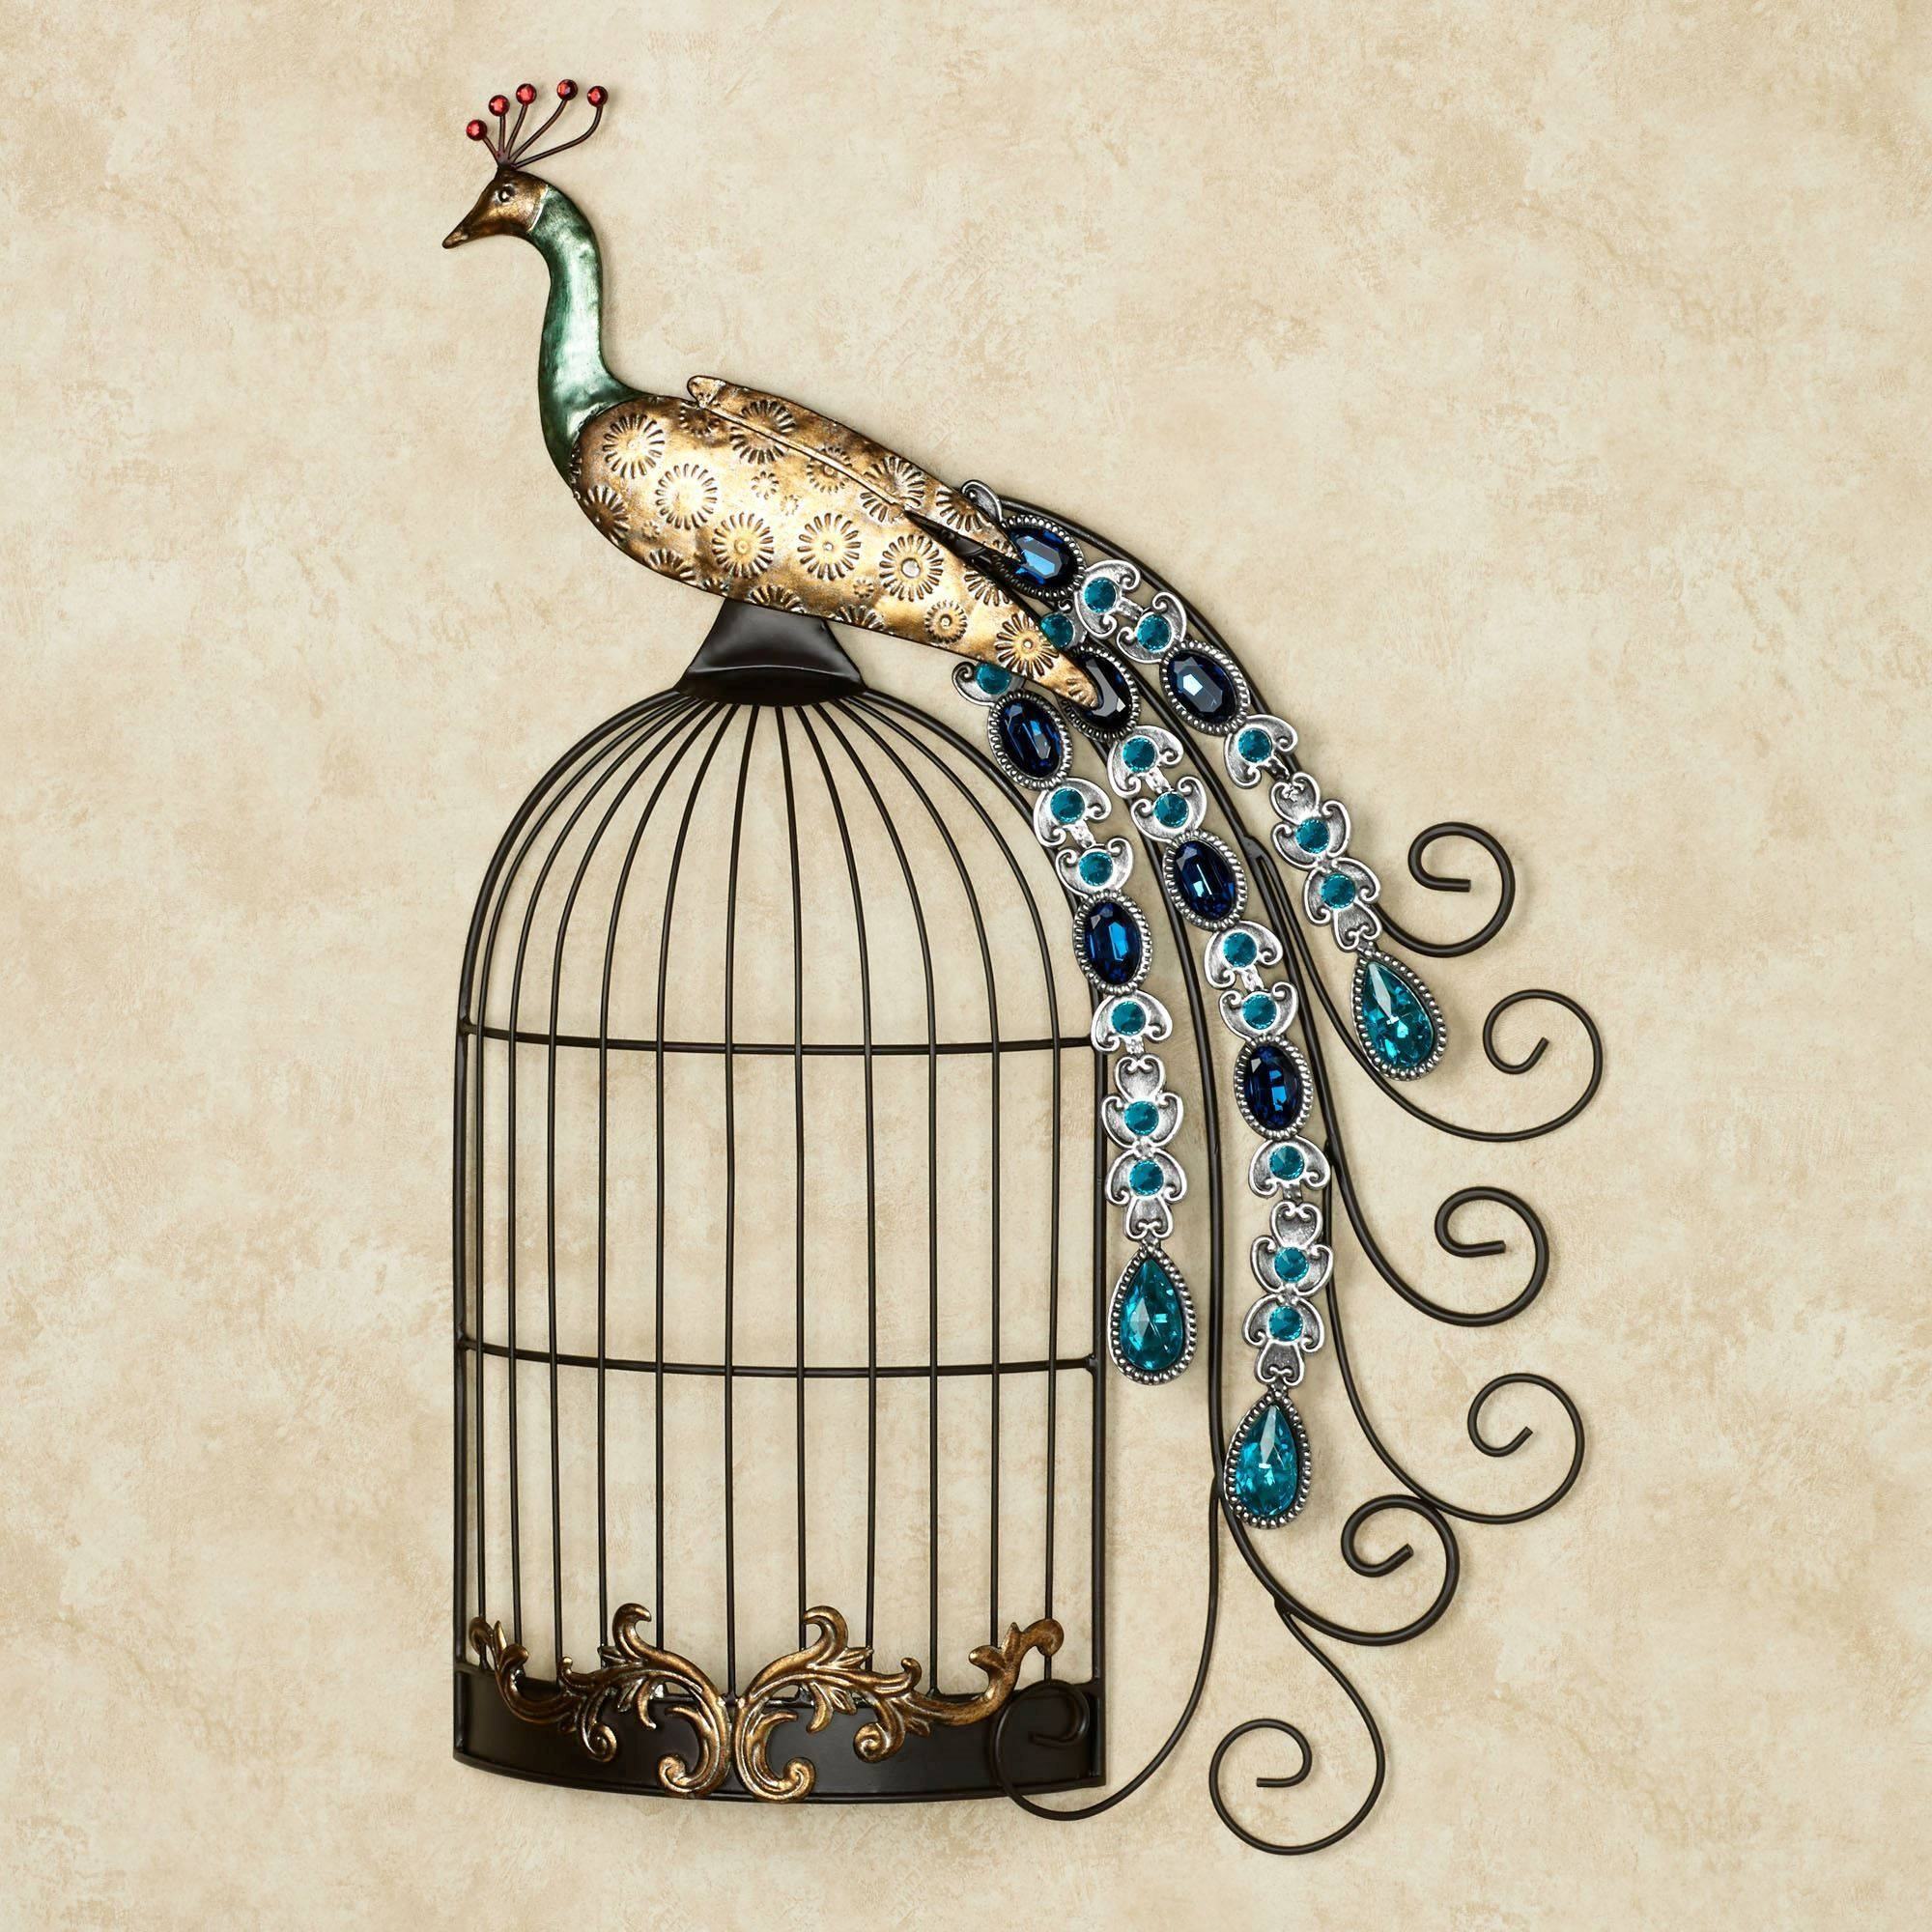 Peacock Jewels On Cage Metal Wall Art Regarding Latest Touch Of Class Metal Wall Art (Gallery 18 of 20)